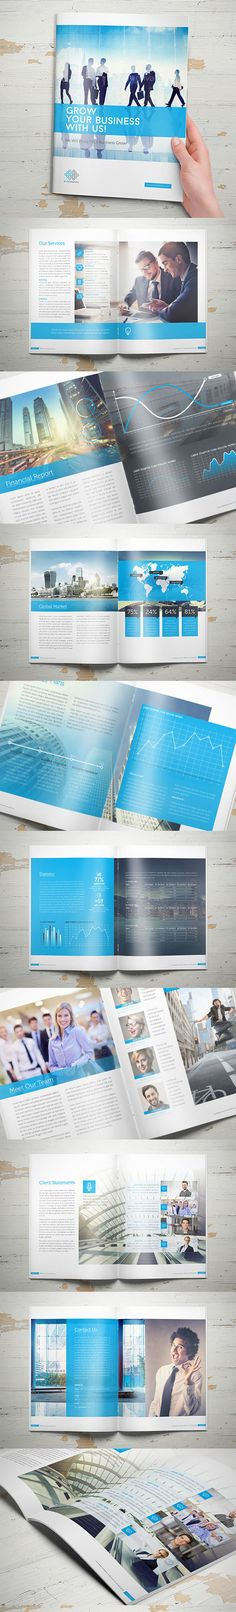 Blue Corporate Brochure Design                                                                               More